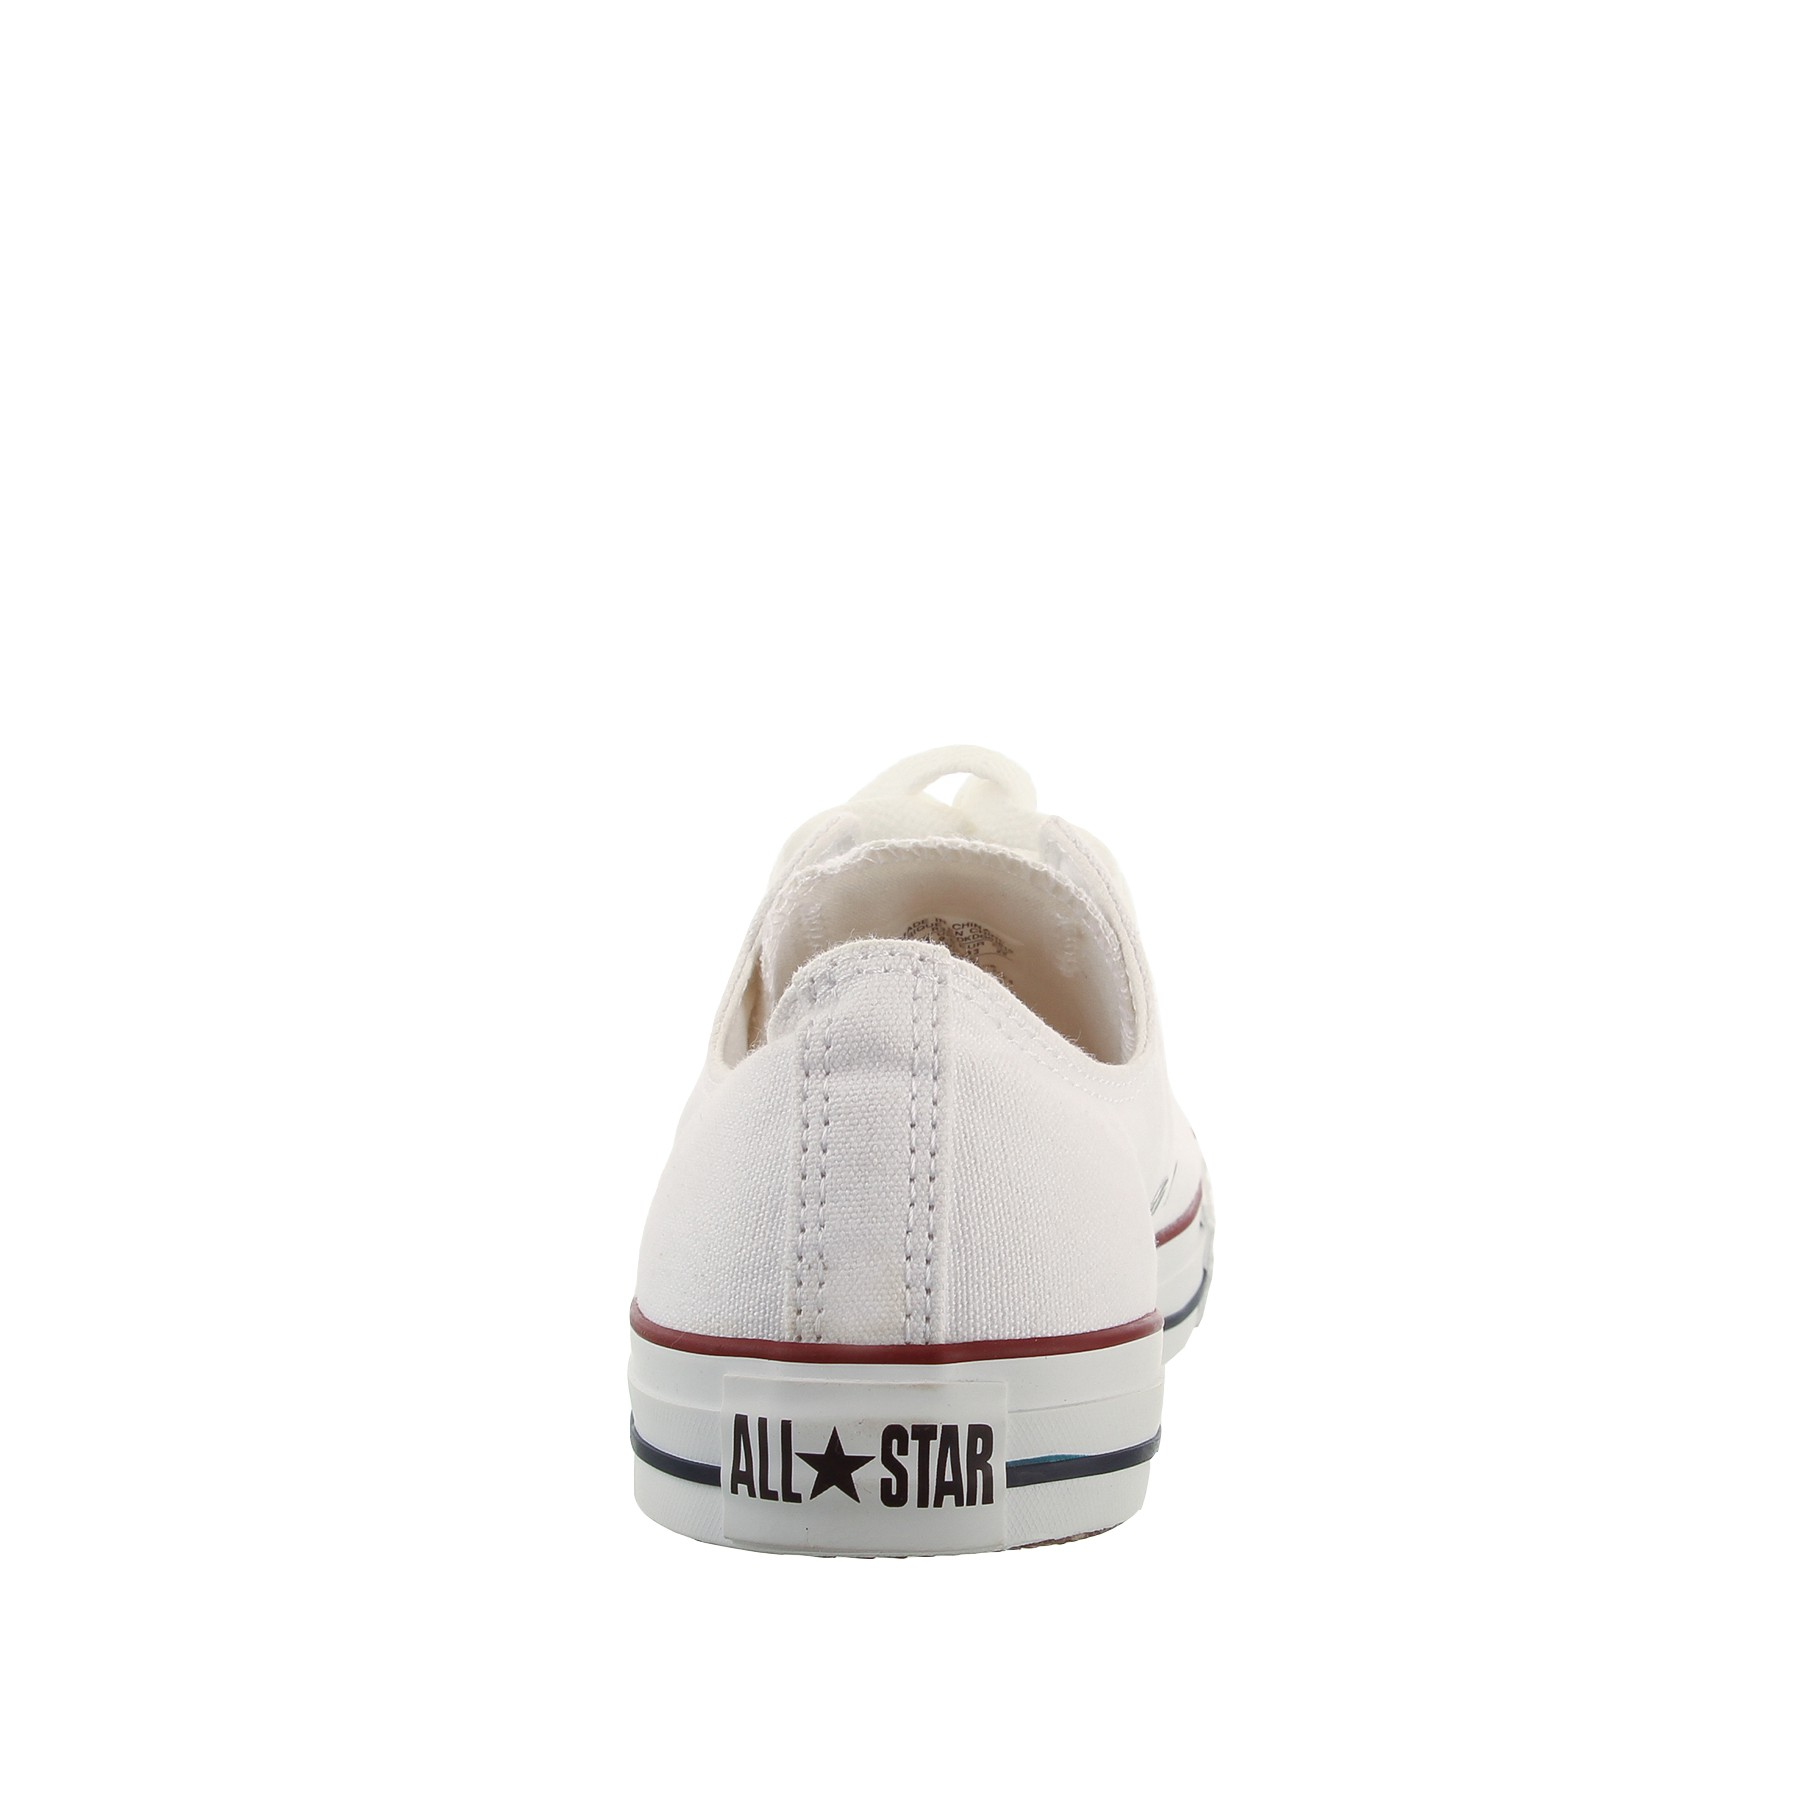 M7652 CT CHUCK TAYLOR AS CORE/OPTICAL WHITE Bild https://cdn03.plentymarkets.com/zsy4vjx32p87/item/images/4271/full/M7652-ama-06.JPG